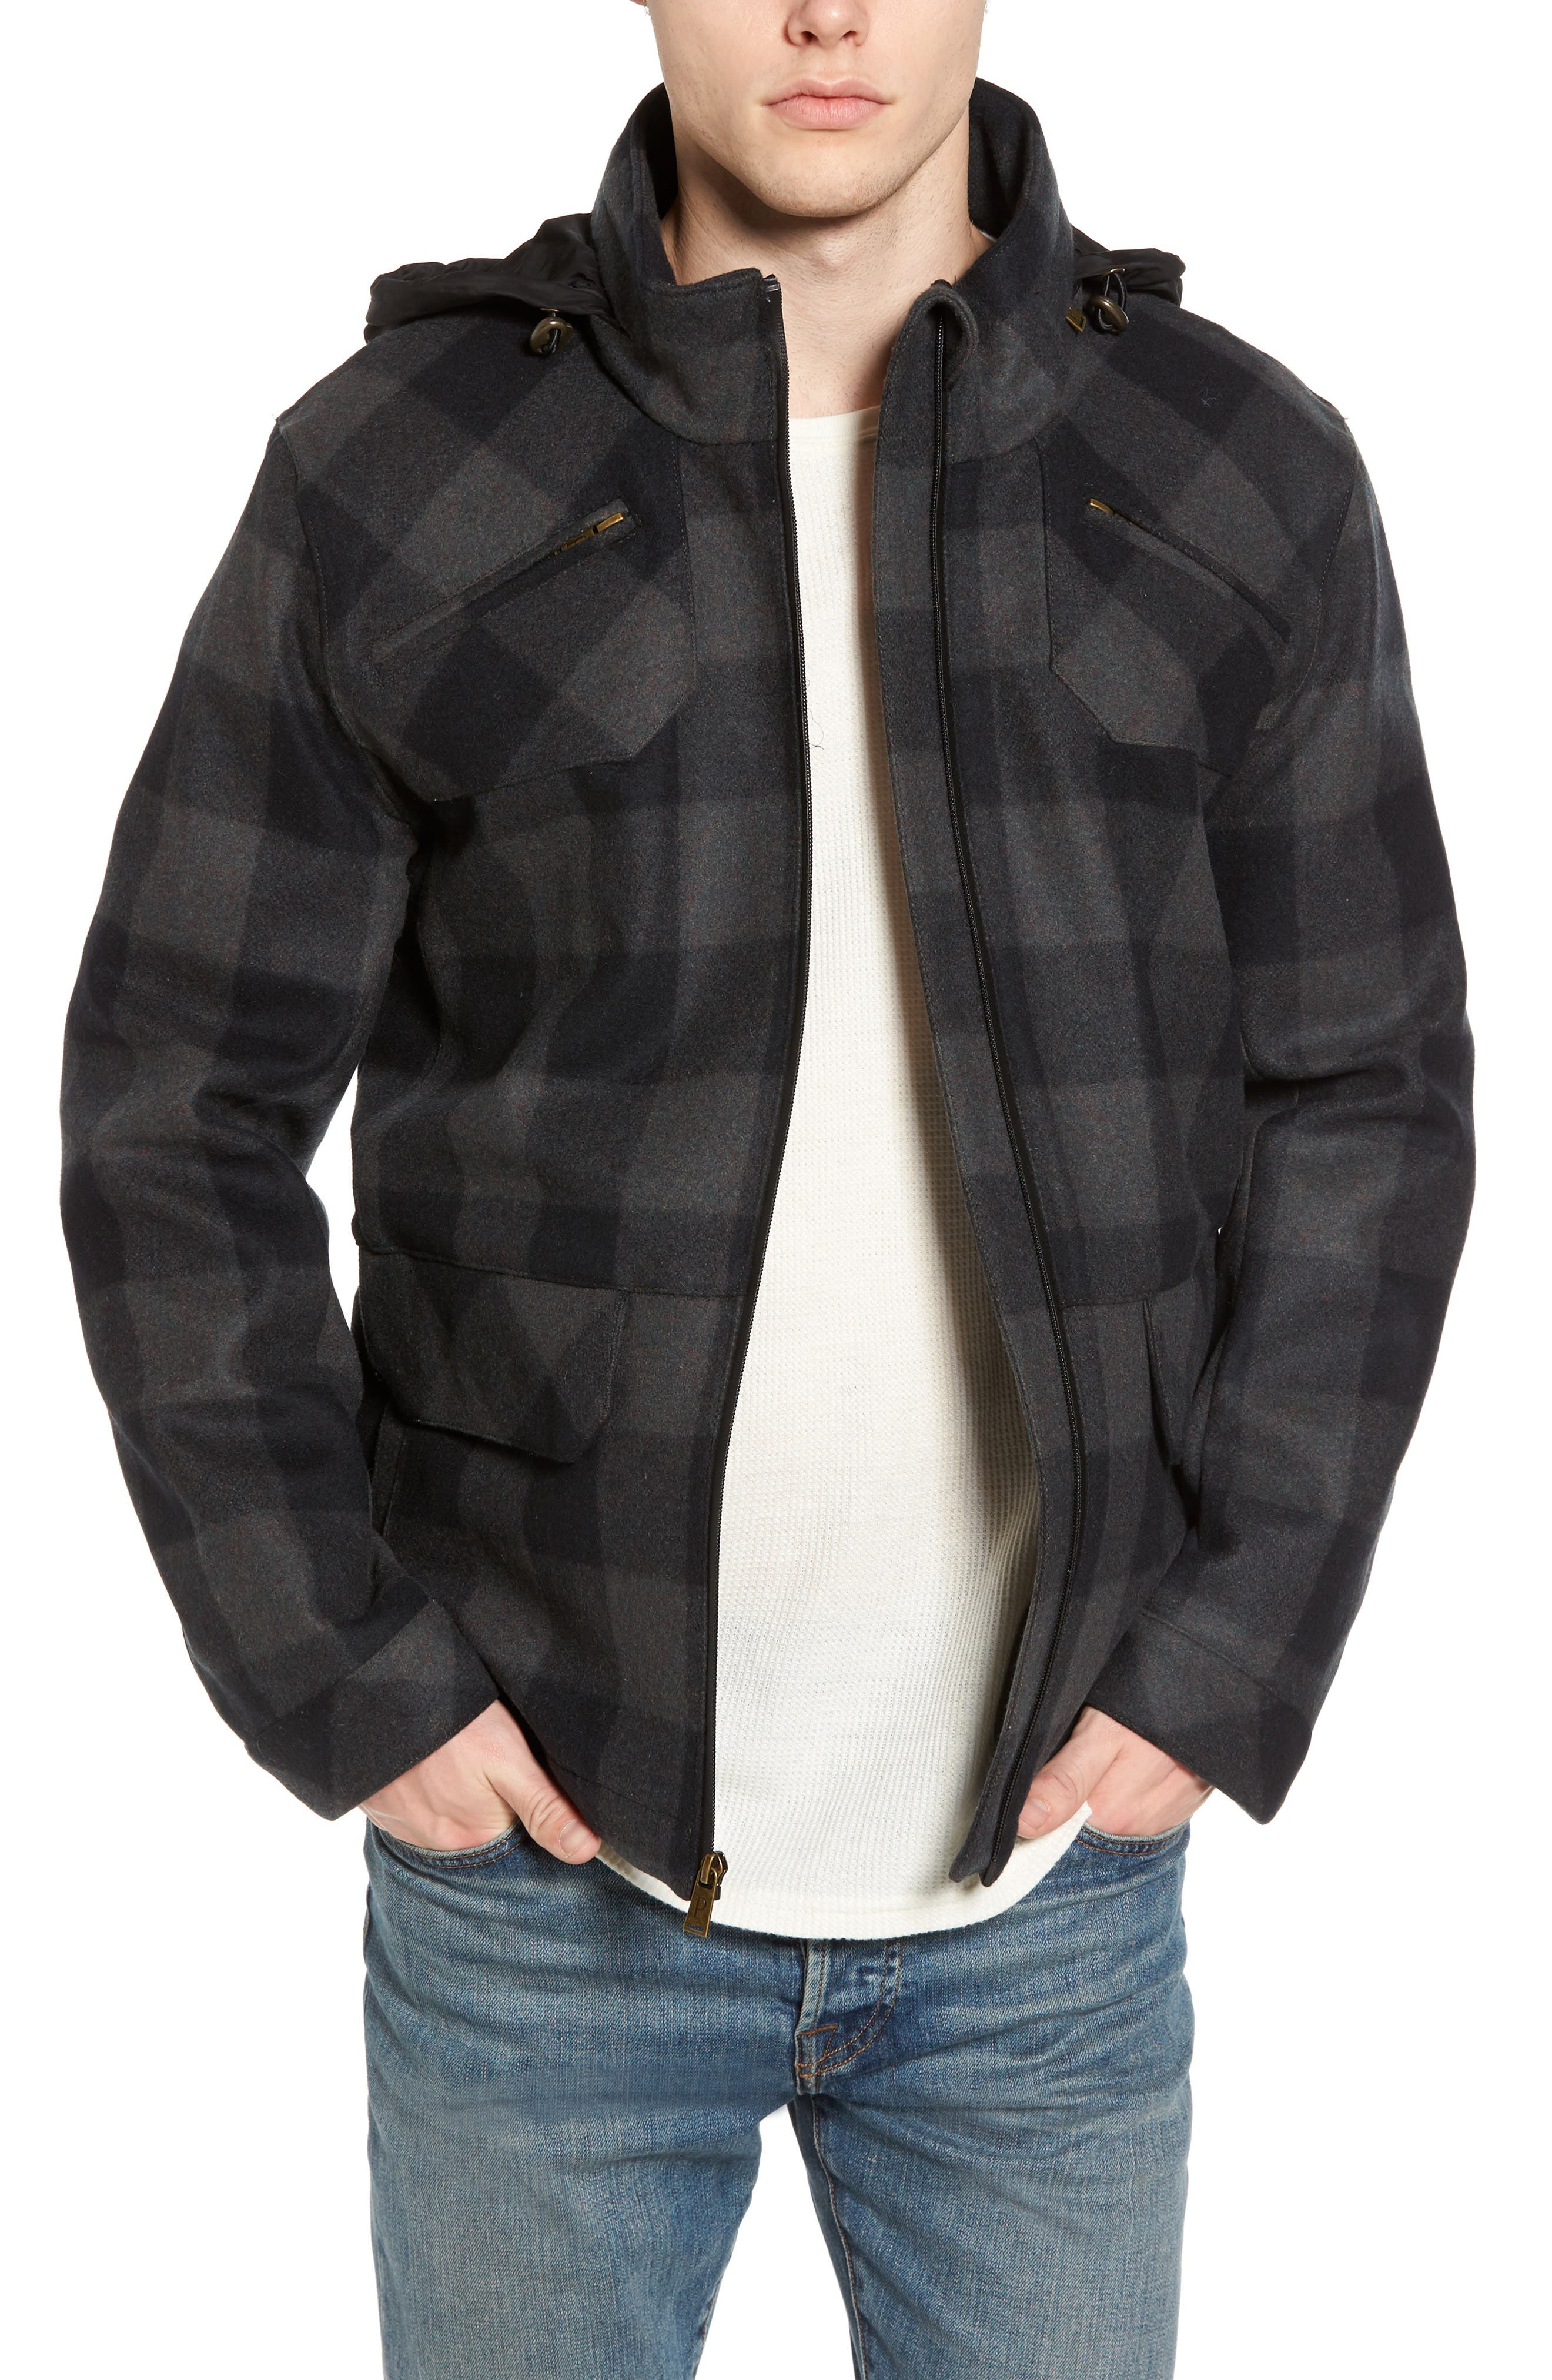 Albuquerque Jacket,                             Main thumbnail 1, color,                             Olive Buffalo Plaid